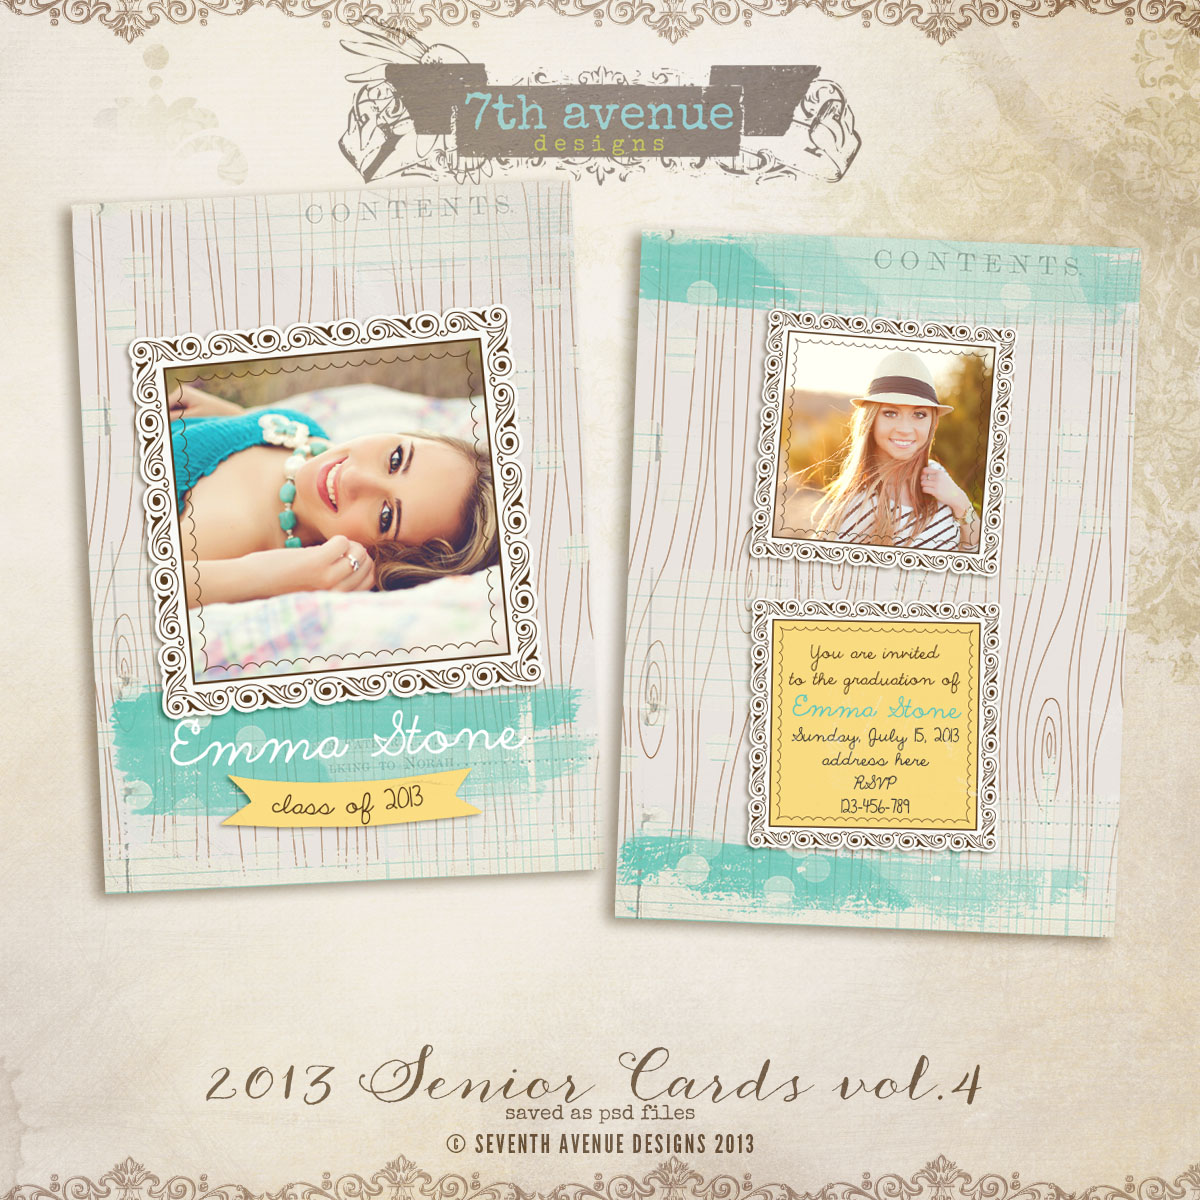 2013 Senior Card Templates no.4